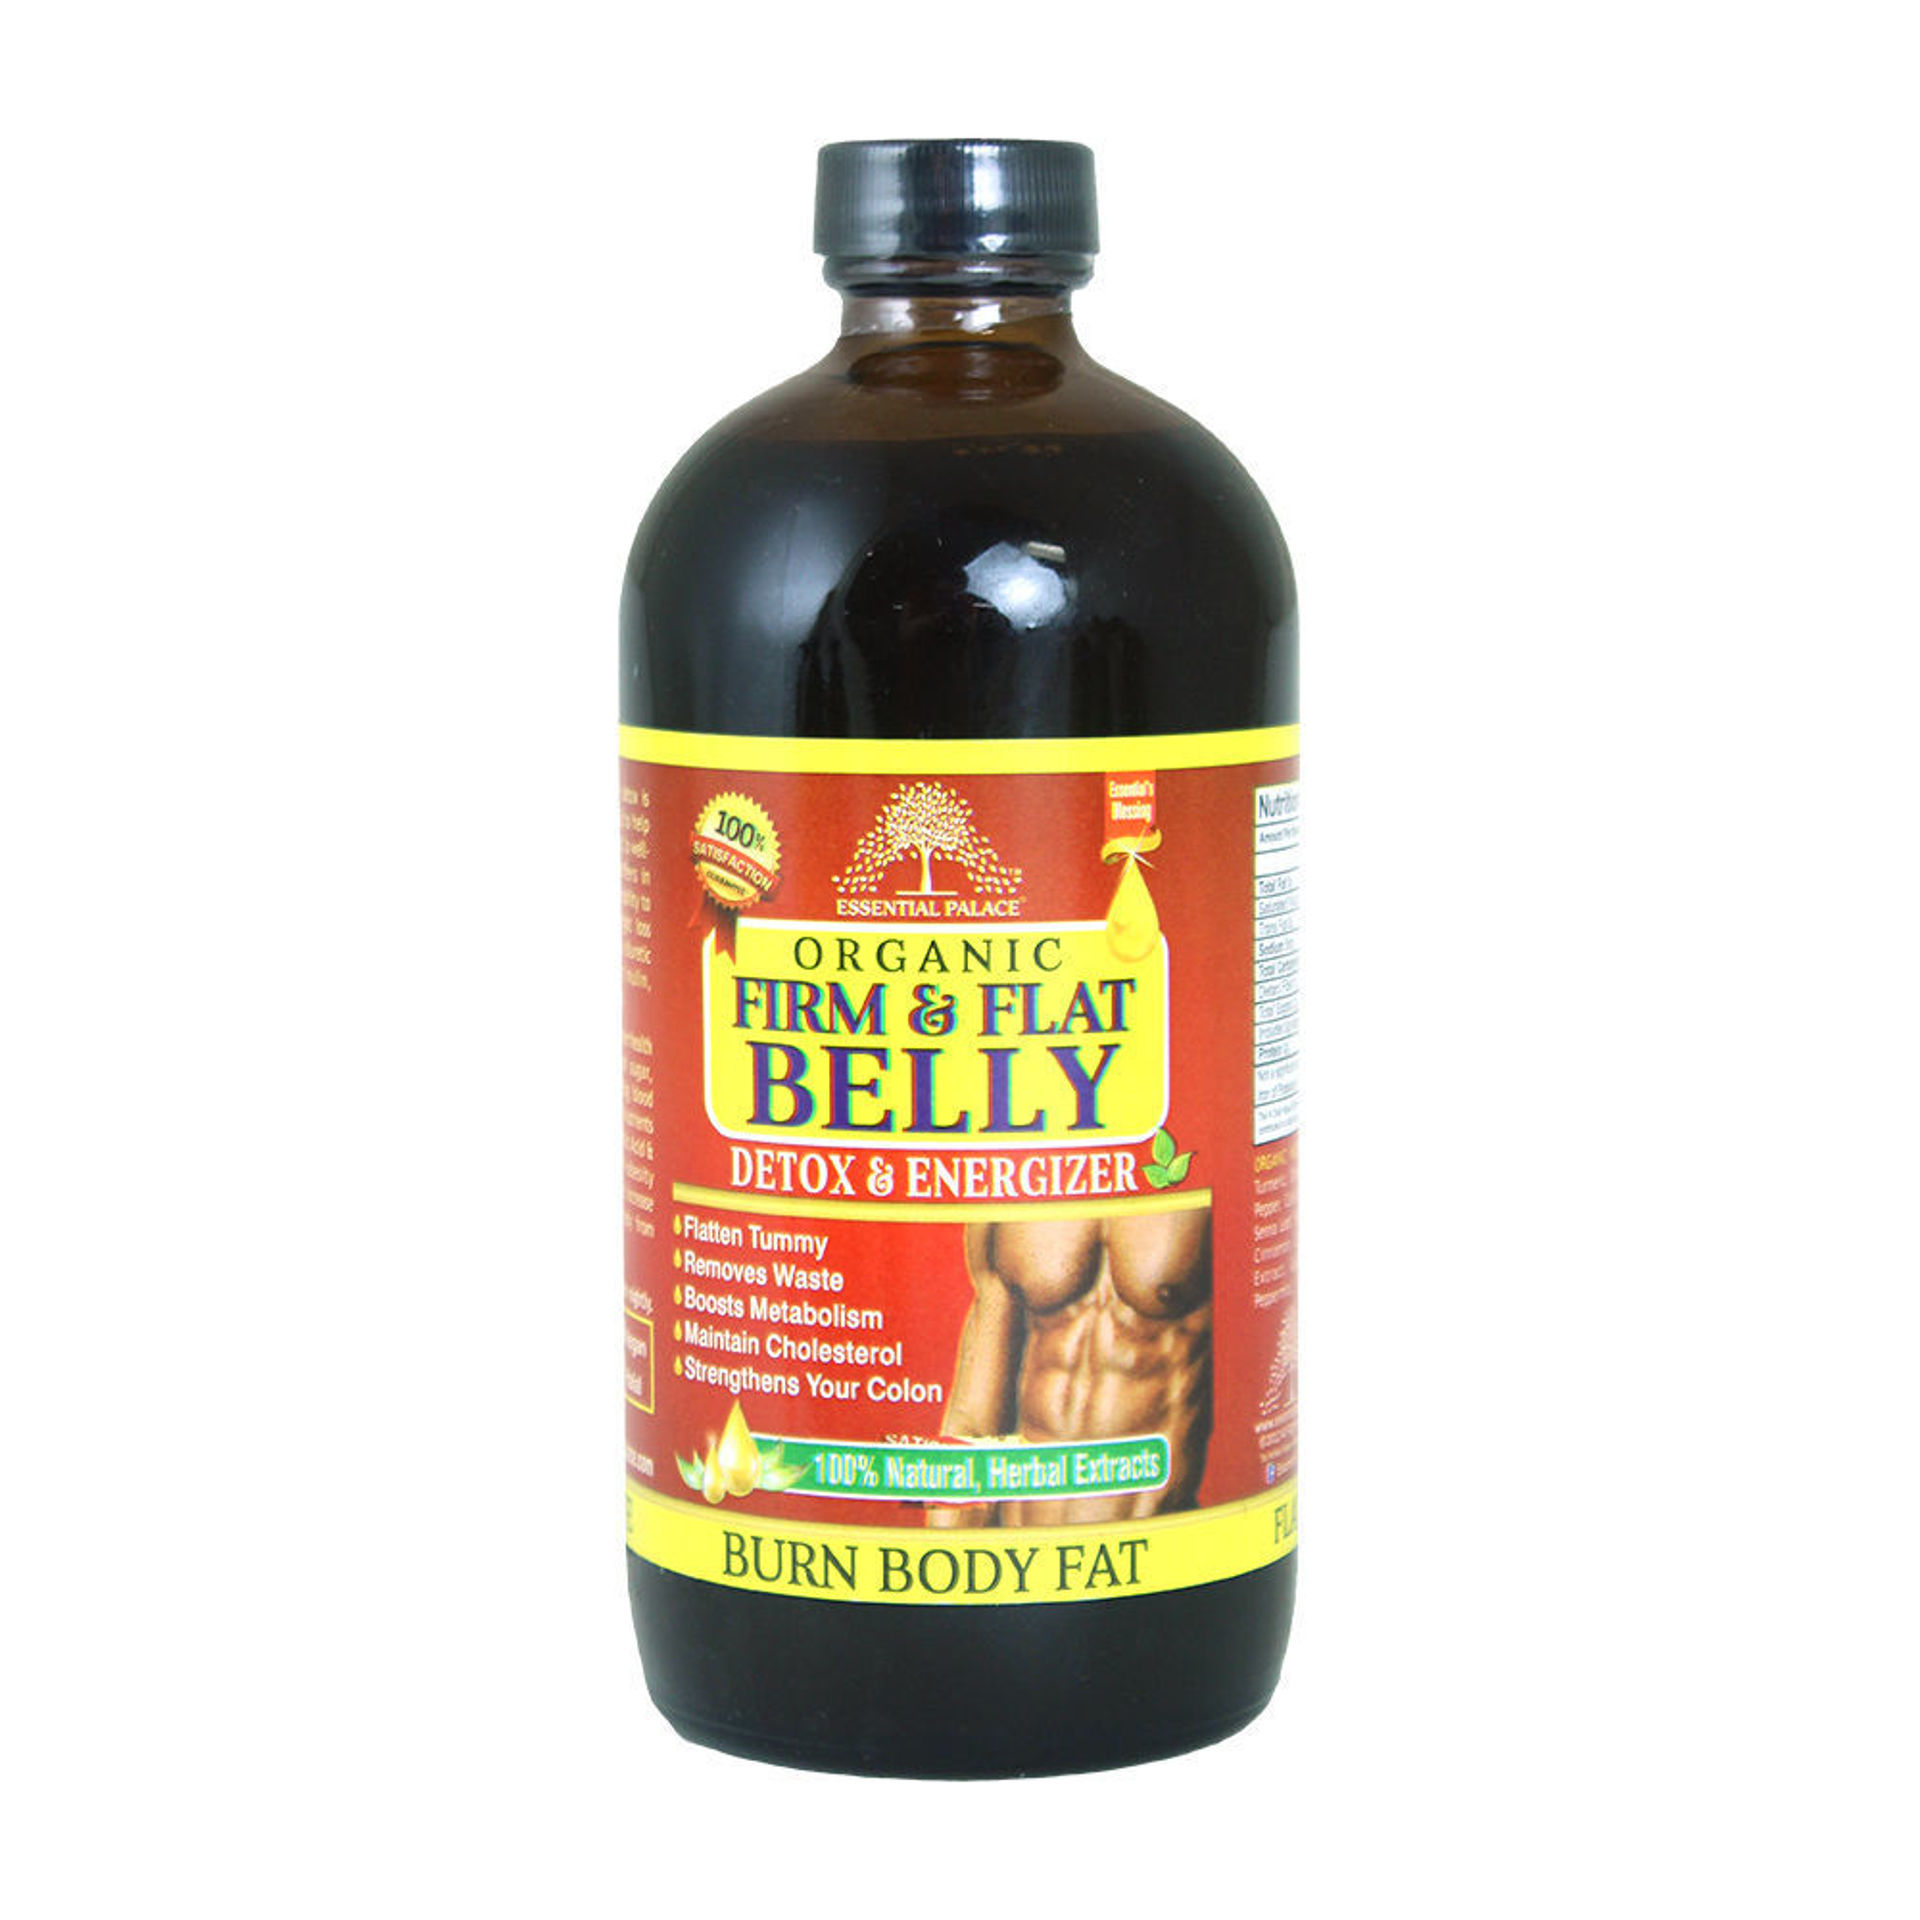 Picture of Organic Firm & Flat Belly Detox